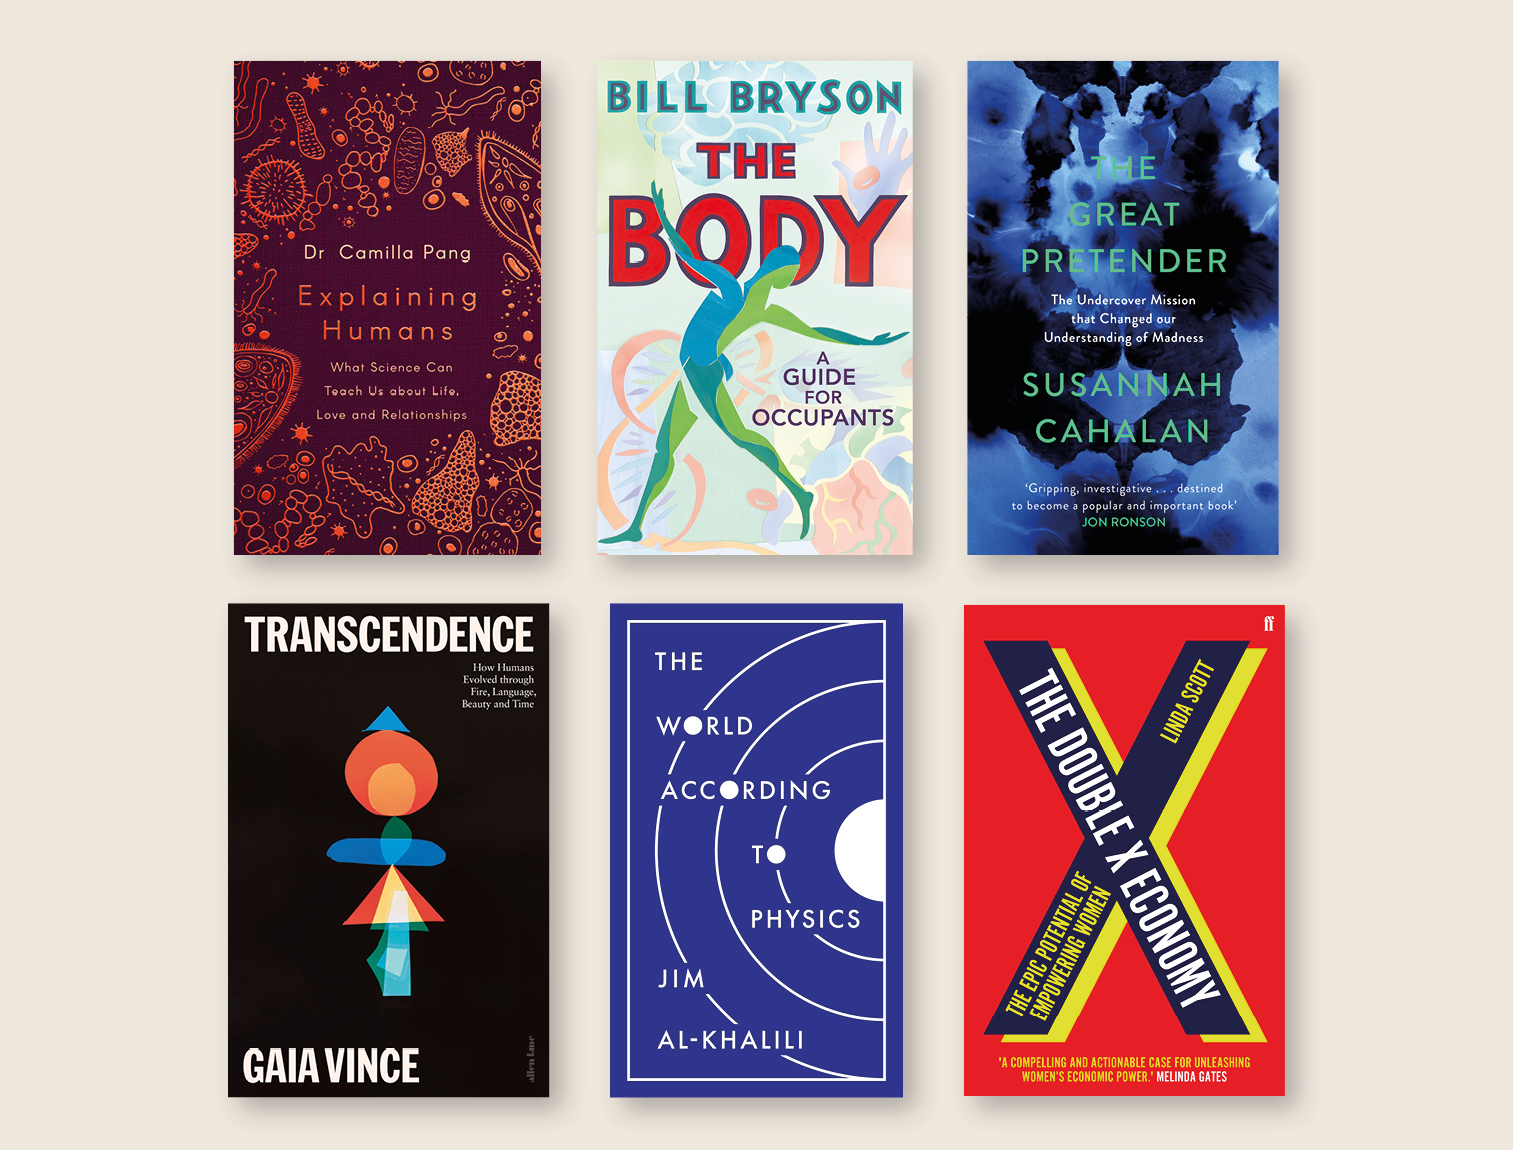 2020 shortlisted titles - Explaining Humans by Camilla Pang, The Body by Bill Bryson, The Great Pretender by Susannah Cahalan, Transcendence by Gaia Vince, The World According to Physics by Jim Al-Khalili and the Double X Economy by Linda Scott.